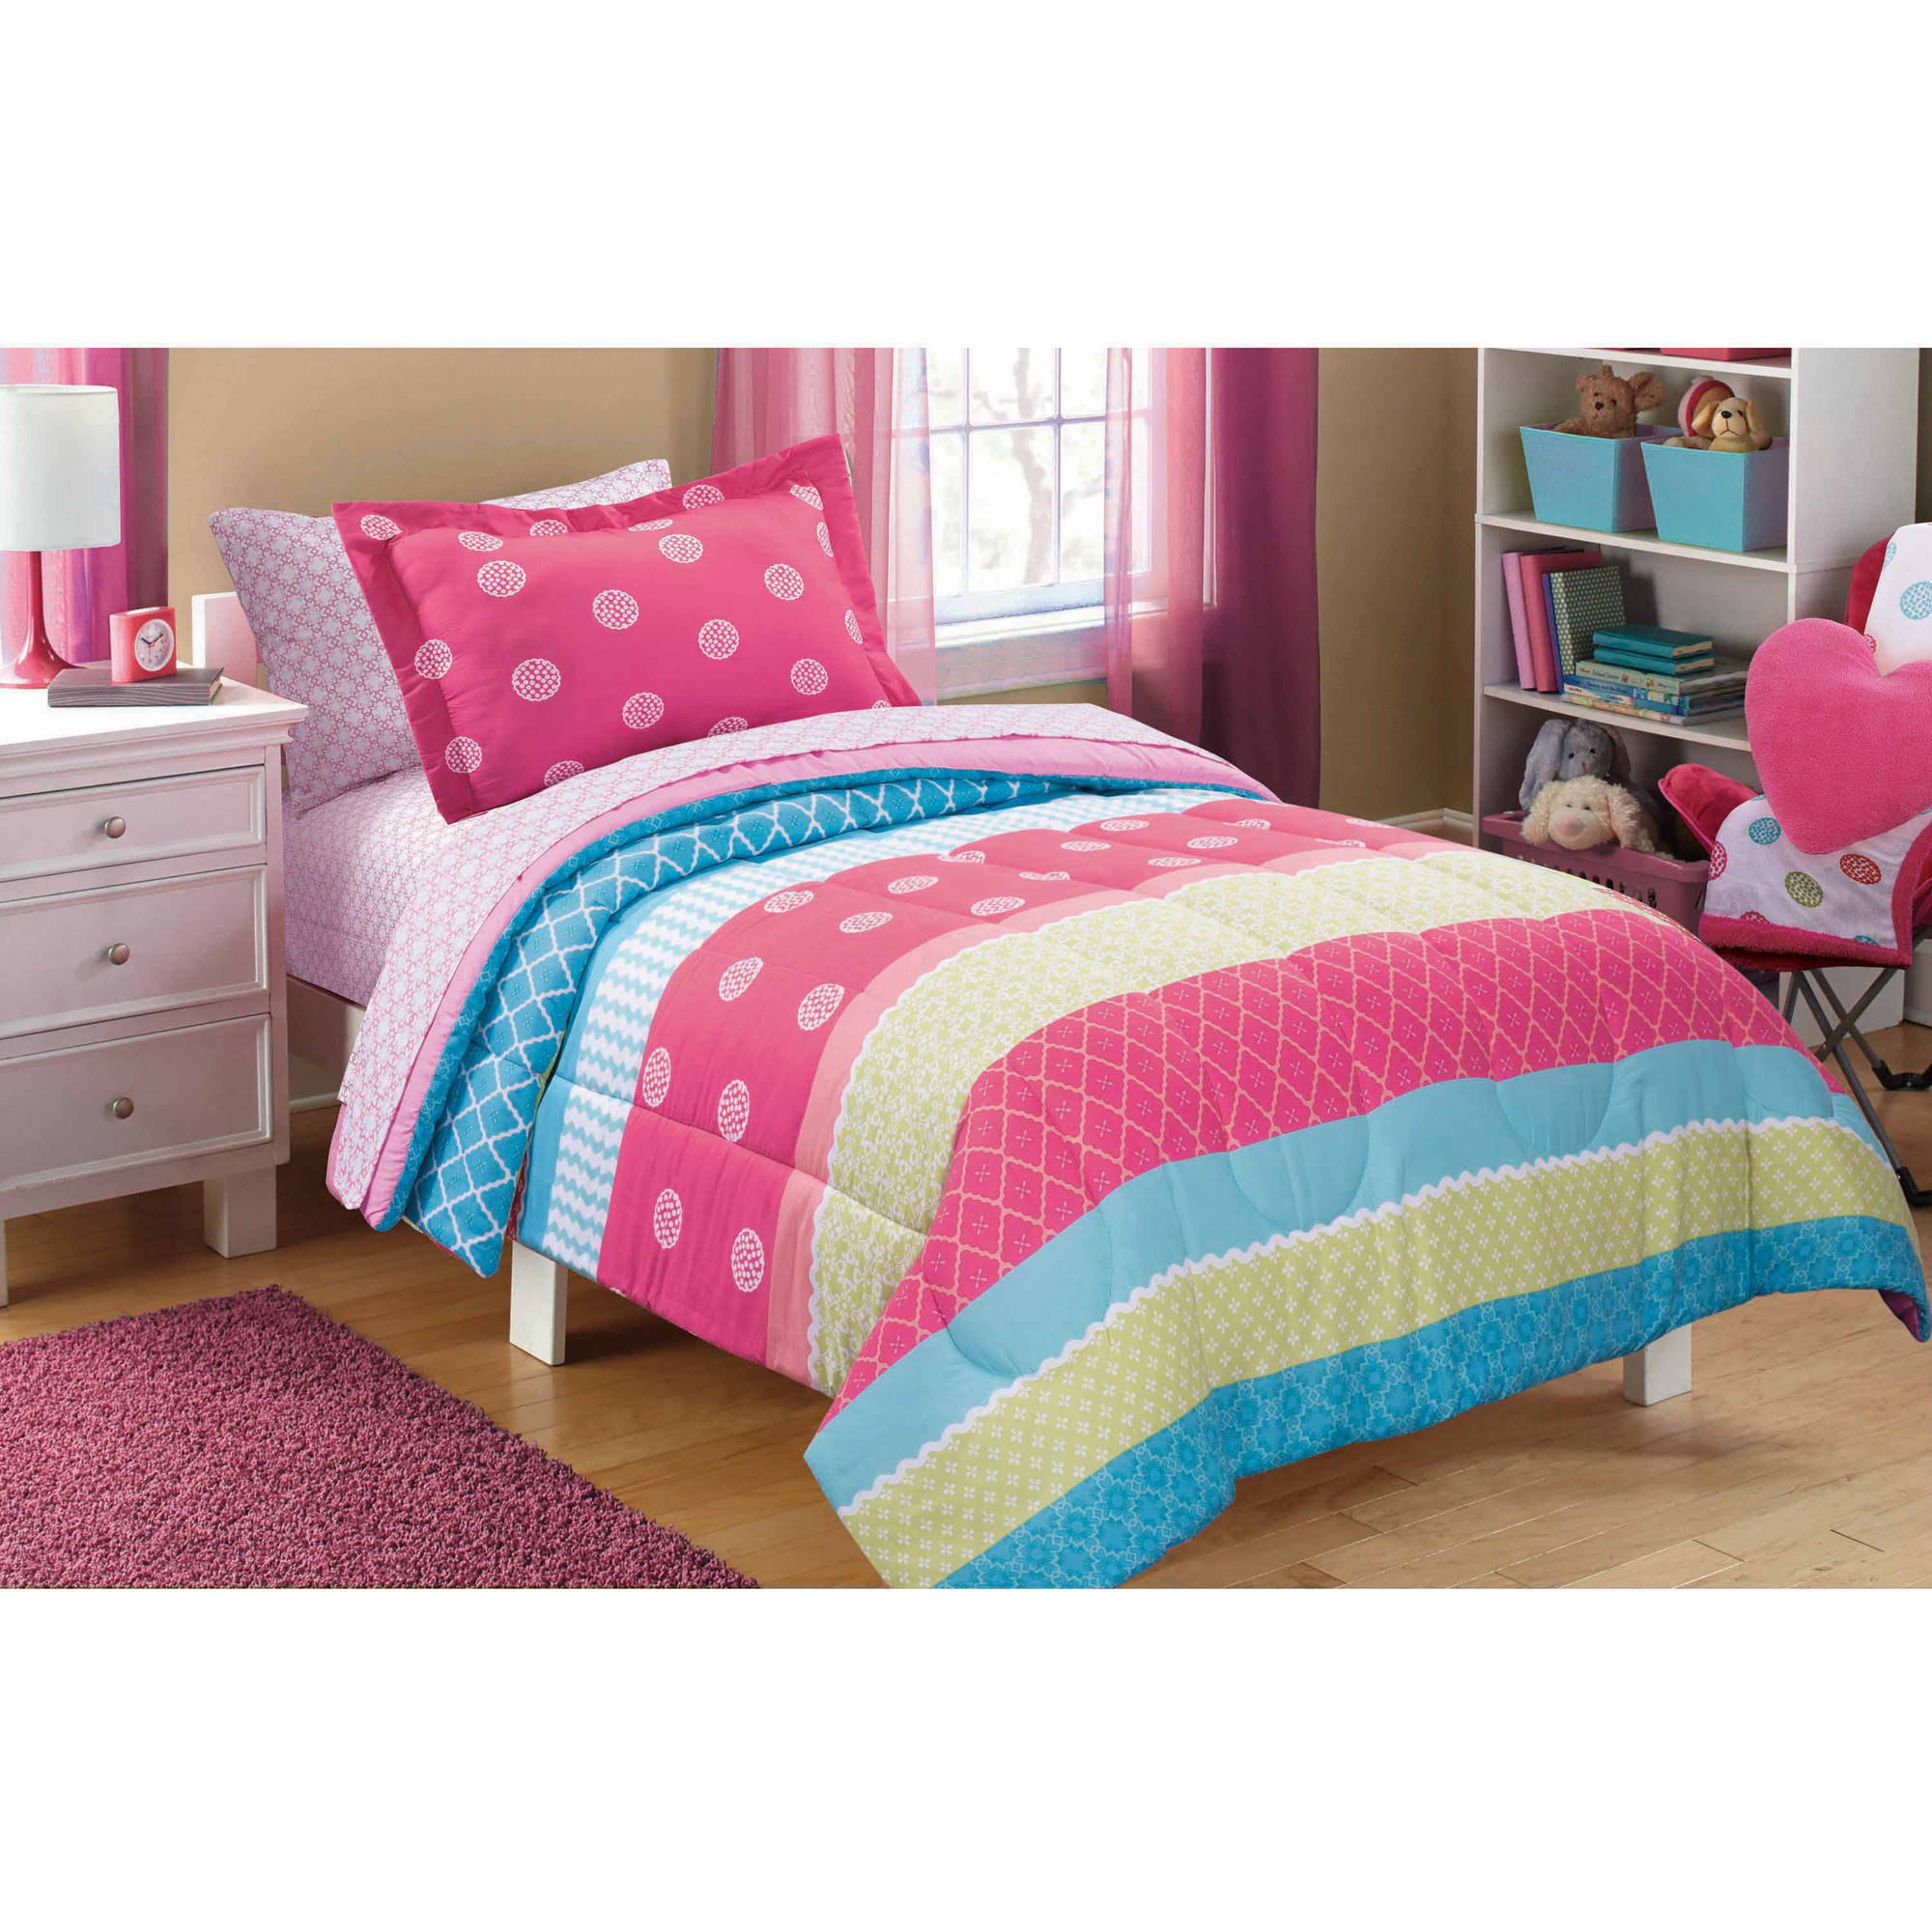 Mainstays Kids Mix It Up Bed in a Bag Bedding Set by Keeco, LLC